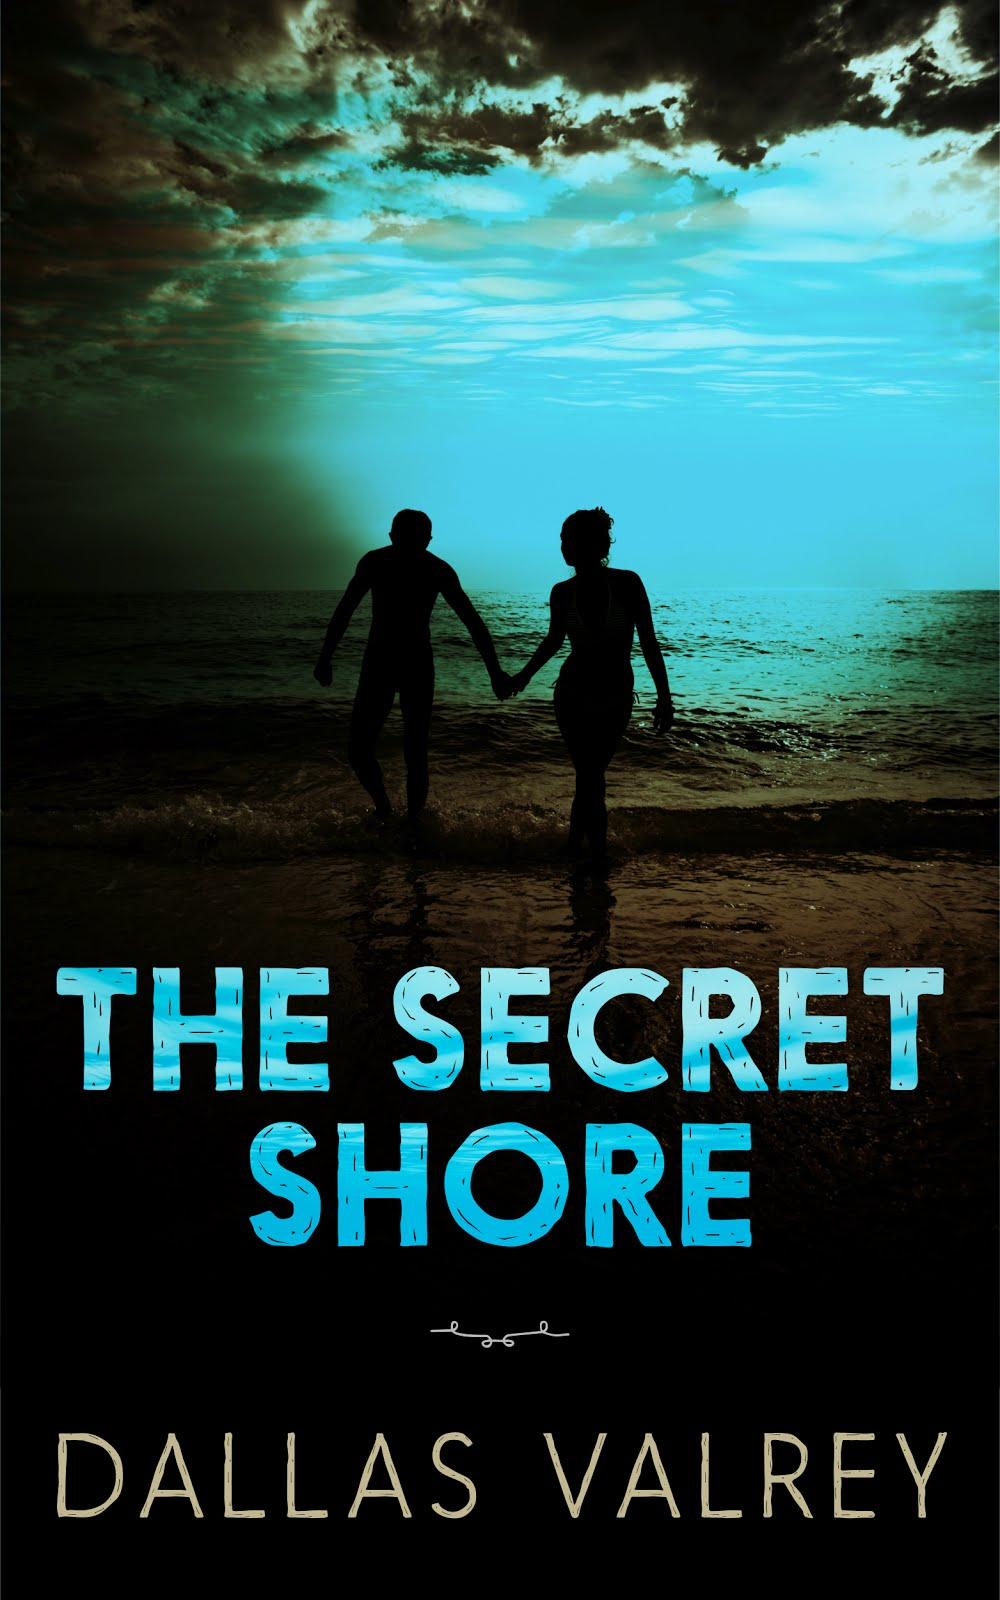 The Secret Shore